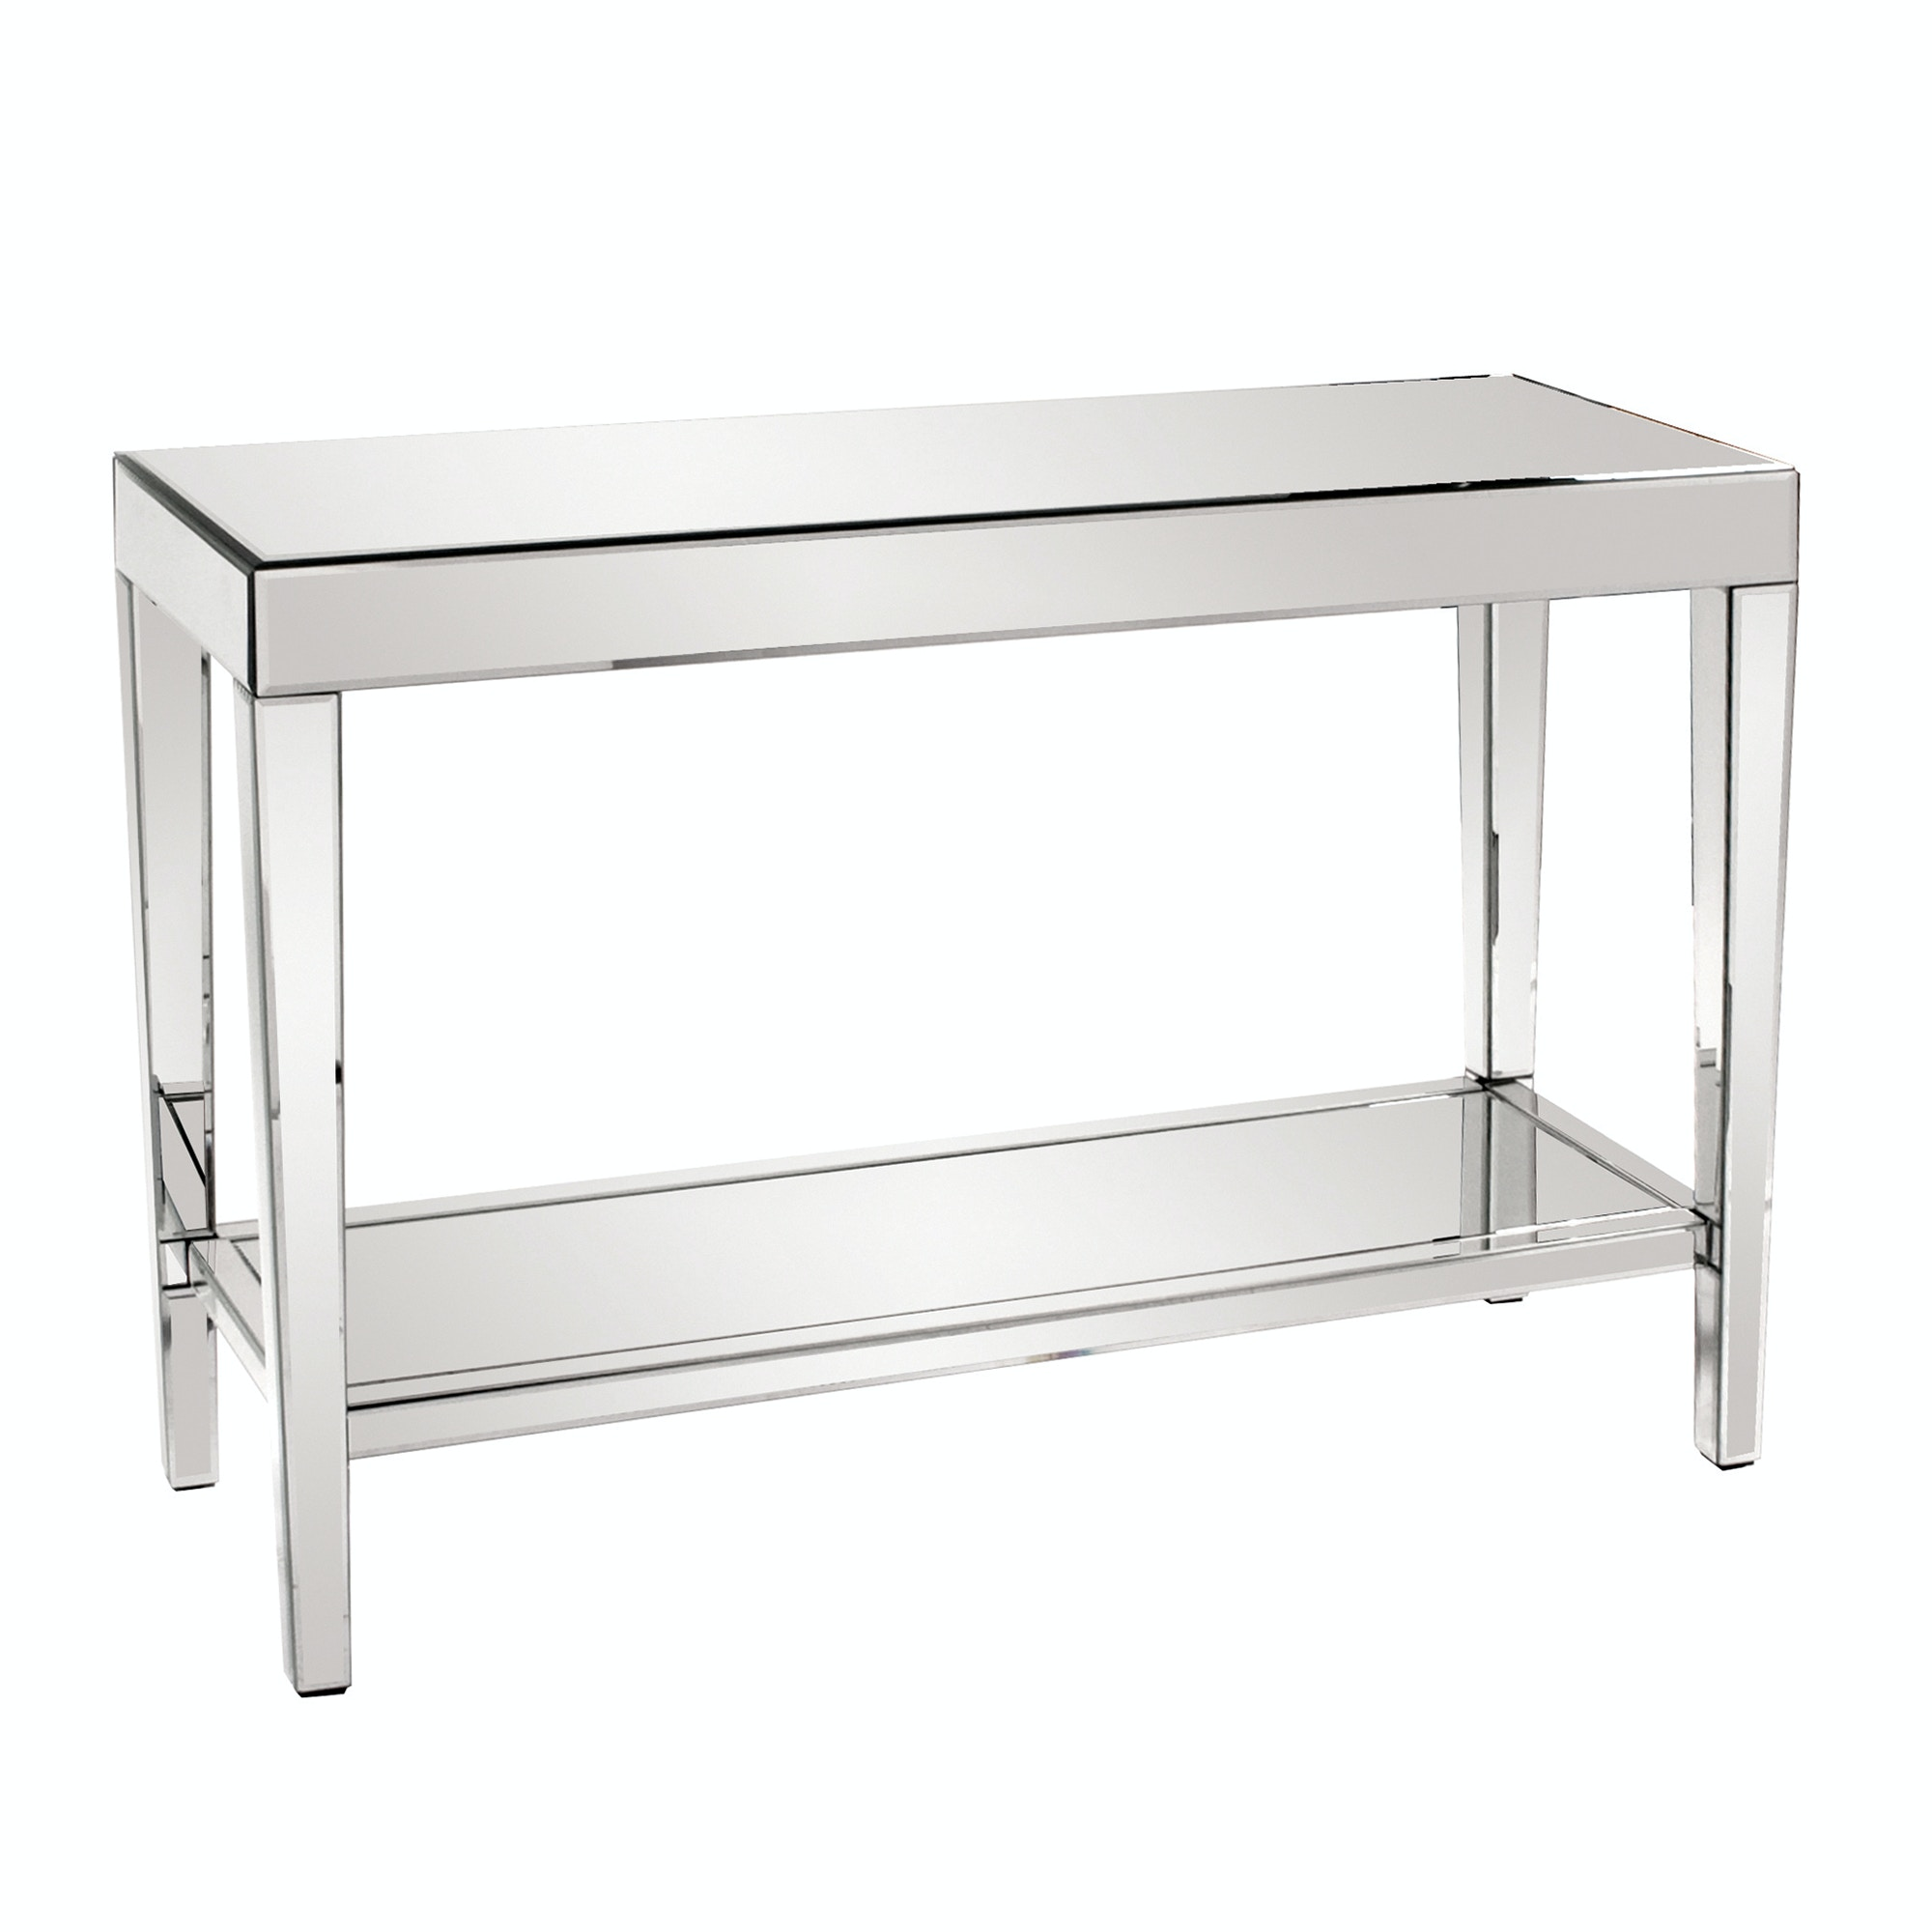 living room console tables mirrored recliners howard elliott orion table with shelf 11096 at finesse furniture interiors